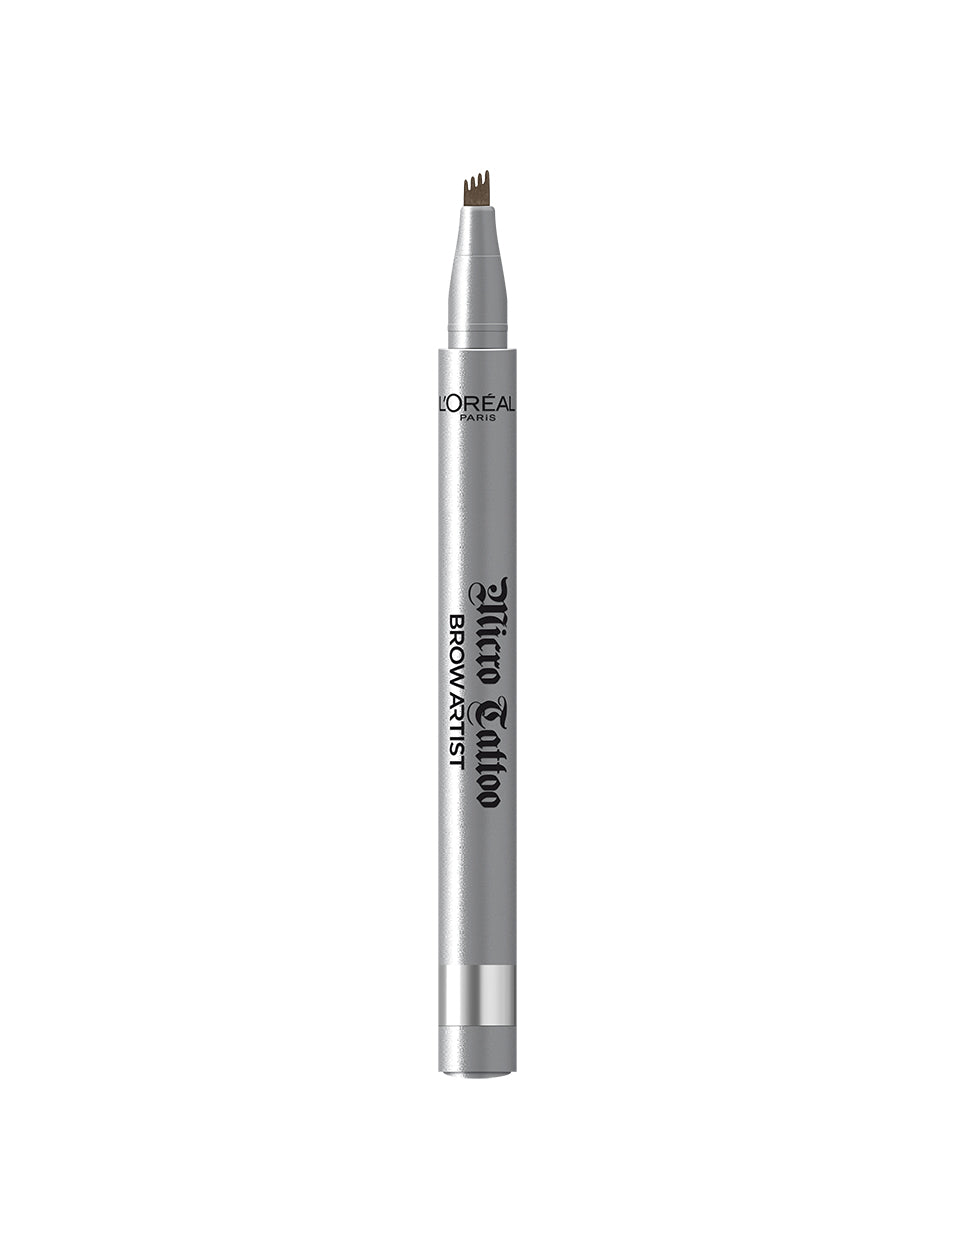 Loreal Eyebrow Micro Tattoo Pen - Ebony (109)